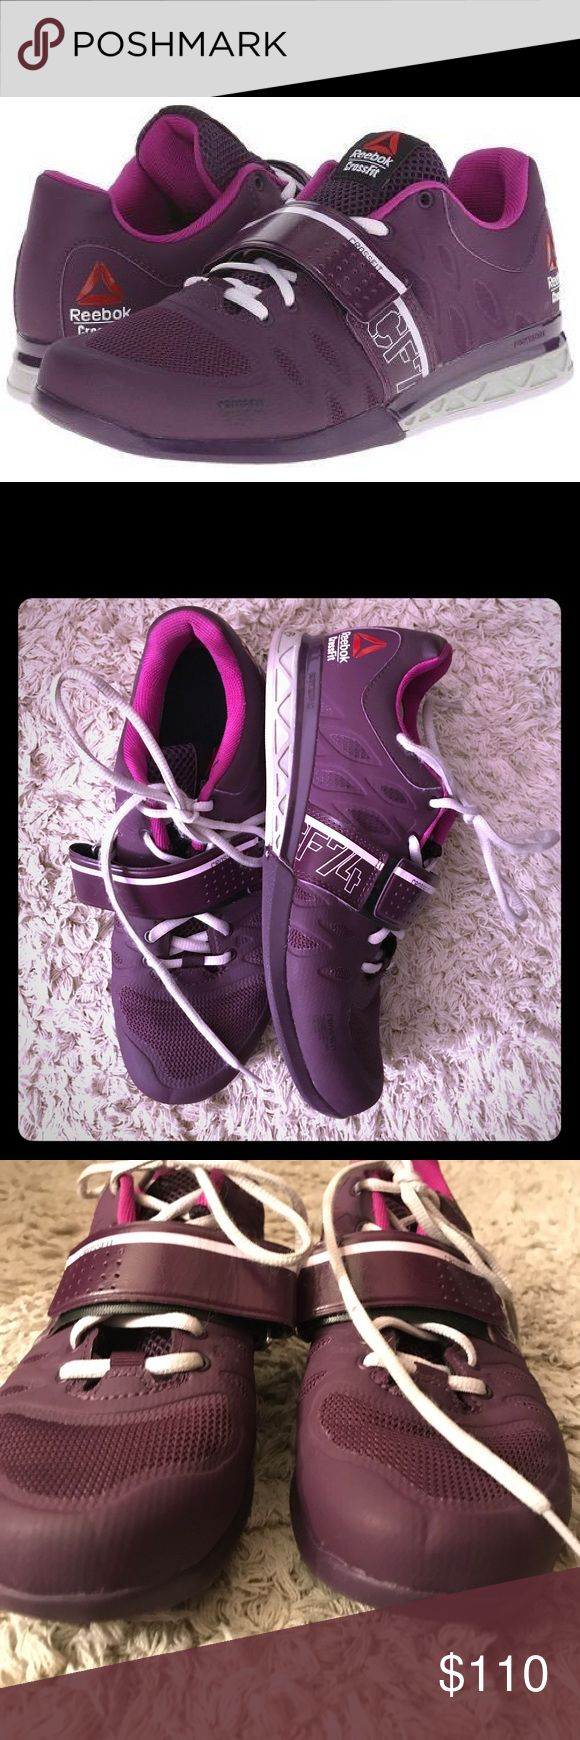 REEBOK CrossFit Lifter purple women 8 like new Women's Reebok Crossfit Lifter 2.0 for weightlifting, Crossfit, etc. Very lightly worn, in like new condition. Deep purple and white. Size 8. No box. Reebok Shoes Athletic Shoes